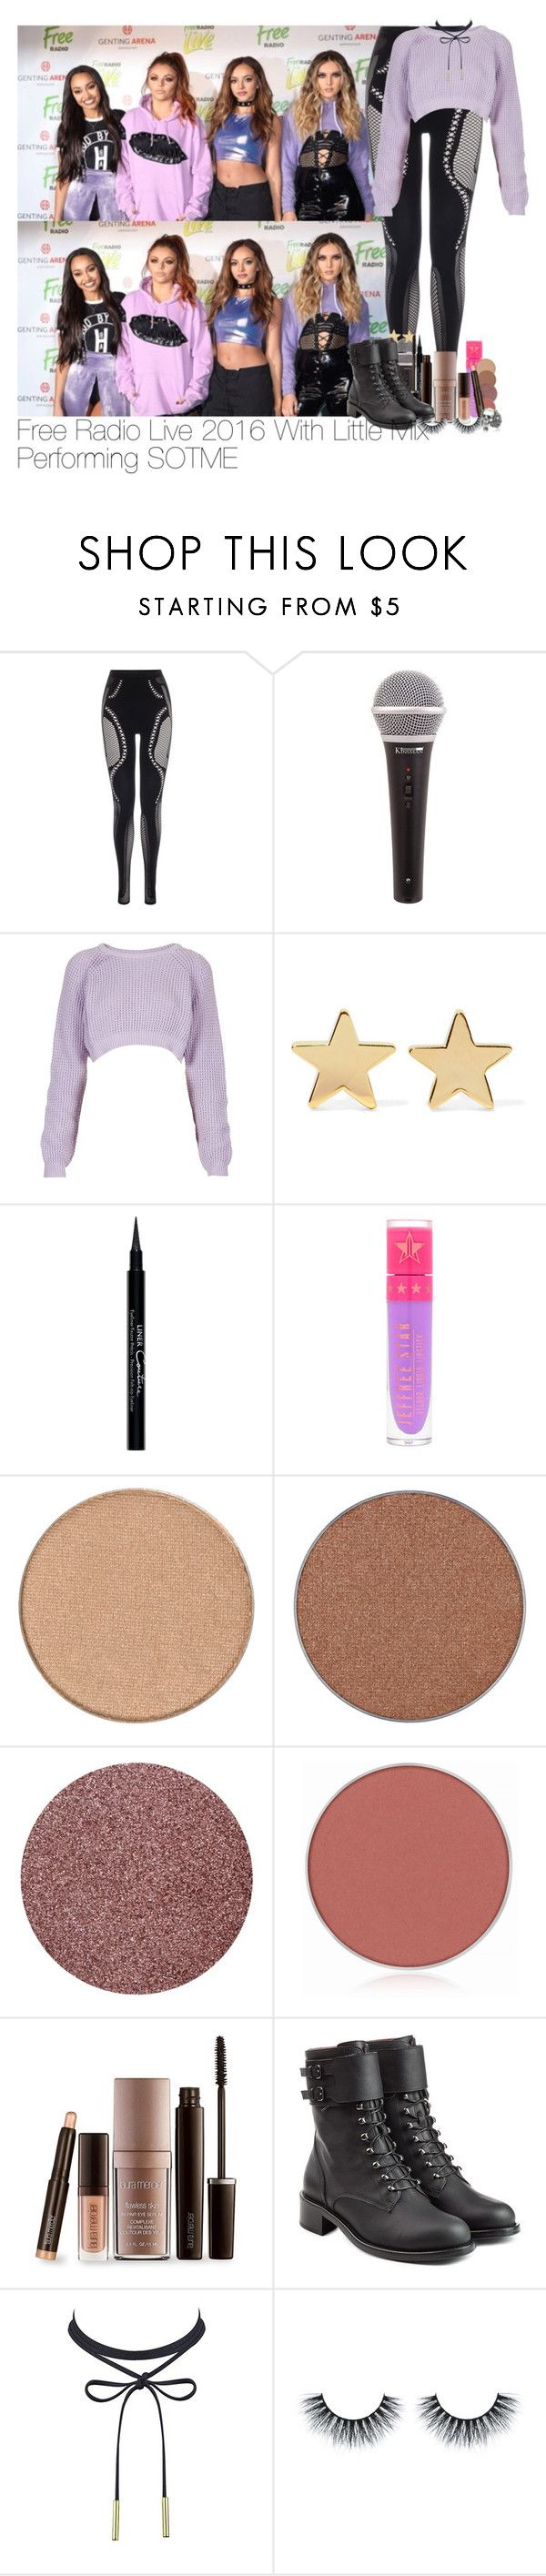 """Free Radio Live 2016 With Little Mix Performing SOTME"" by lauren-beth-owens ❤ liked on Polyvore featuring McQ by Alexander McQueen, The Ragged Priest, Jennifer Meyer Jewelry, Givenchy, Jeffree Star, Anastasia Beverly Hills, Laura Mercier, Philosophy di Lorenzo Serafini, Ugo Cacciatori and littlemix"